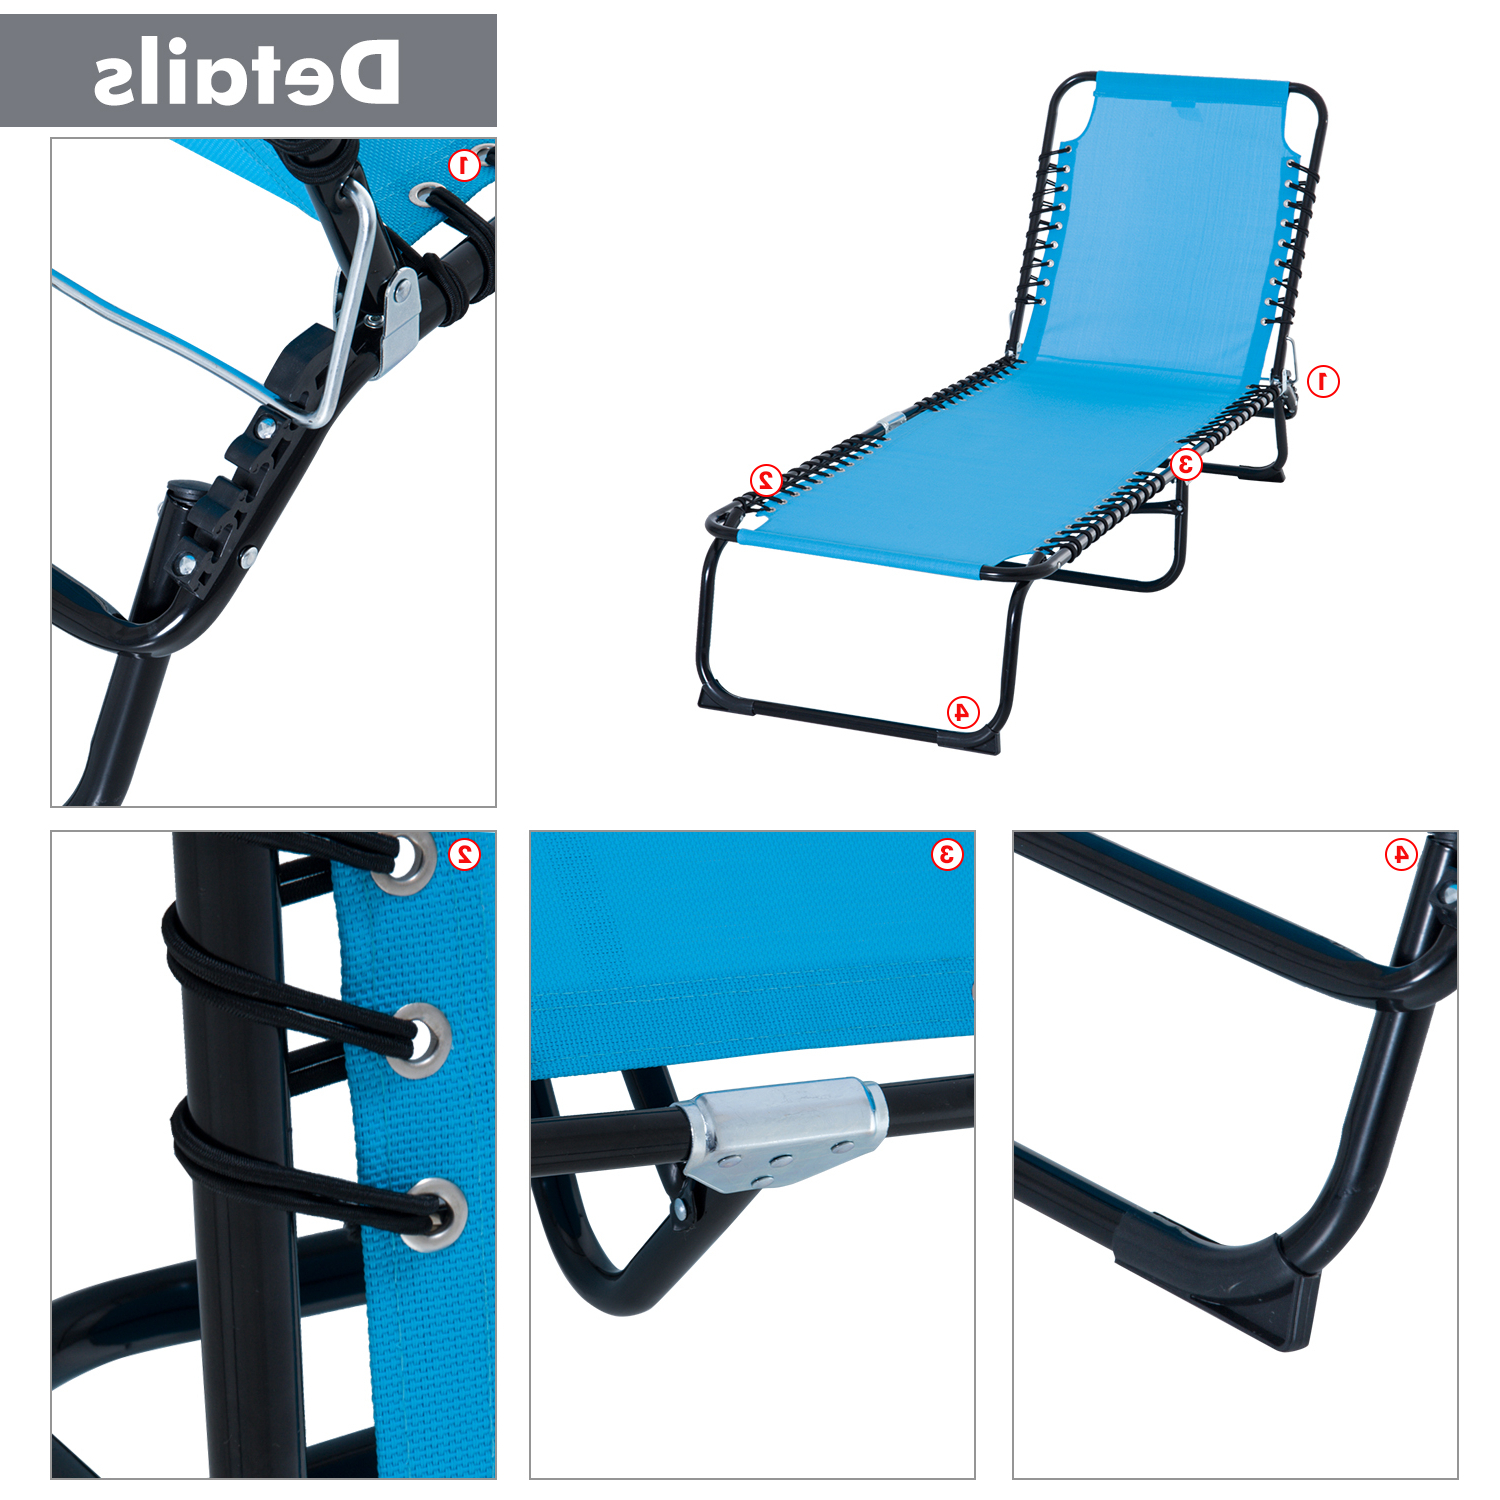 Outsunny Portable 3 Position Reclining Folding Beach Chaise Lounge Chair In Recent 3 Position Portable Reclining Beach Chaise Lounges (Gallery 17 of 25)